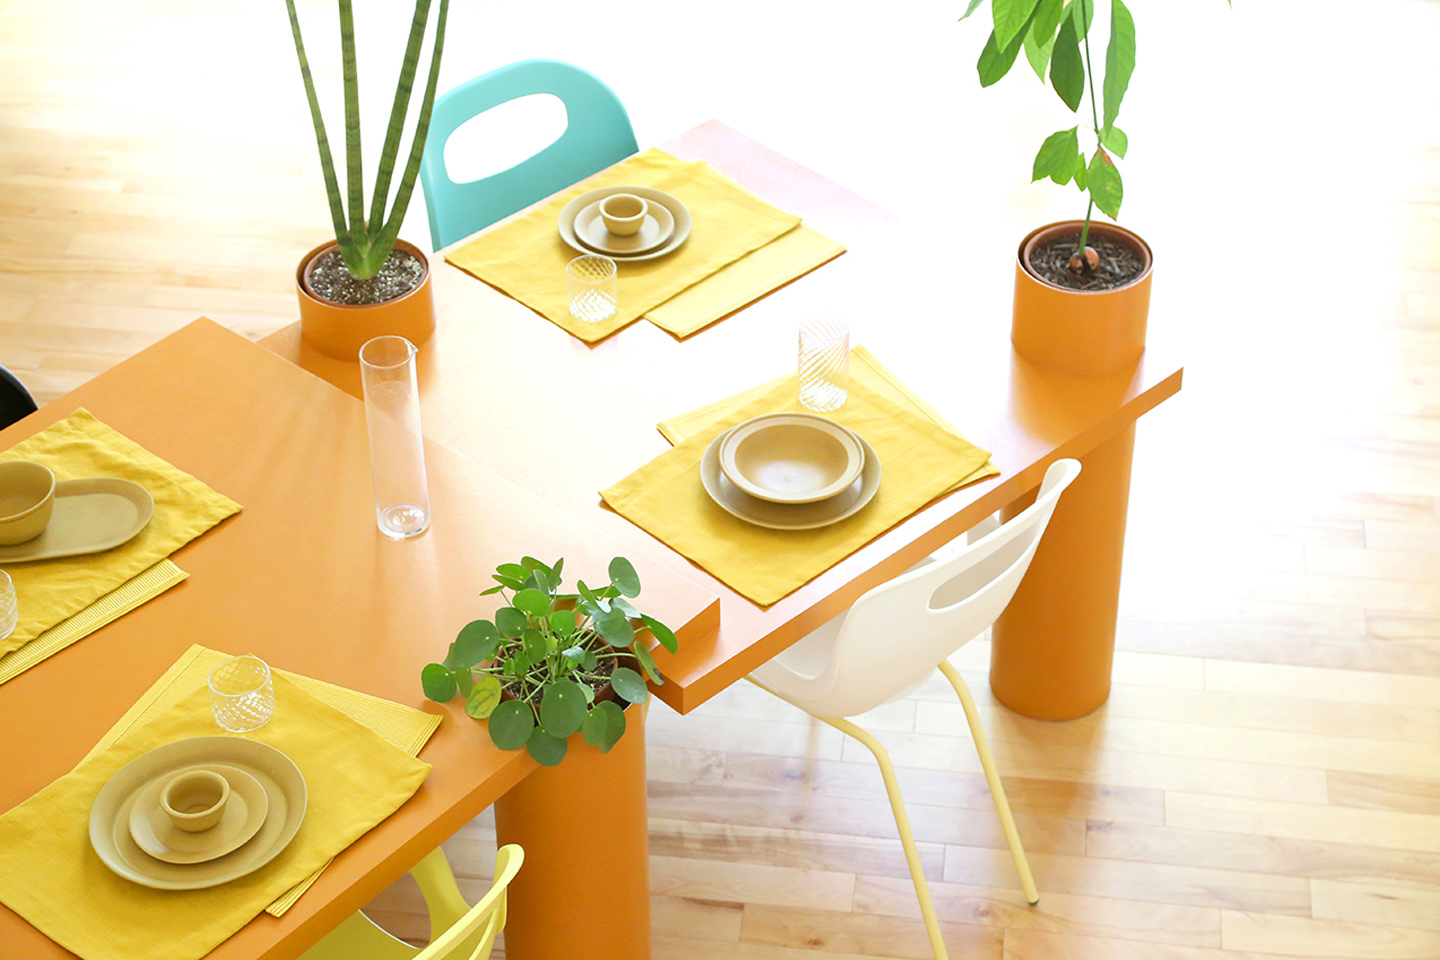 These desks + tables come with built-in cylindrical planters so you can bring your indoor garden to any room!